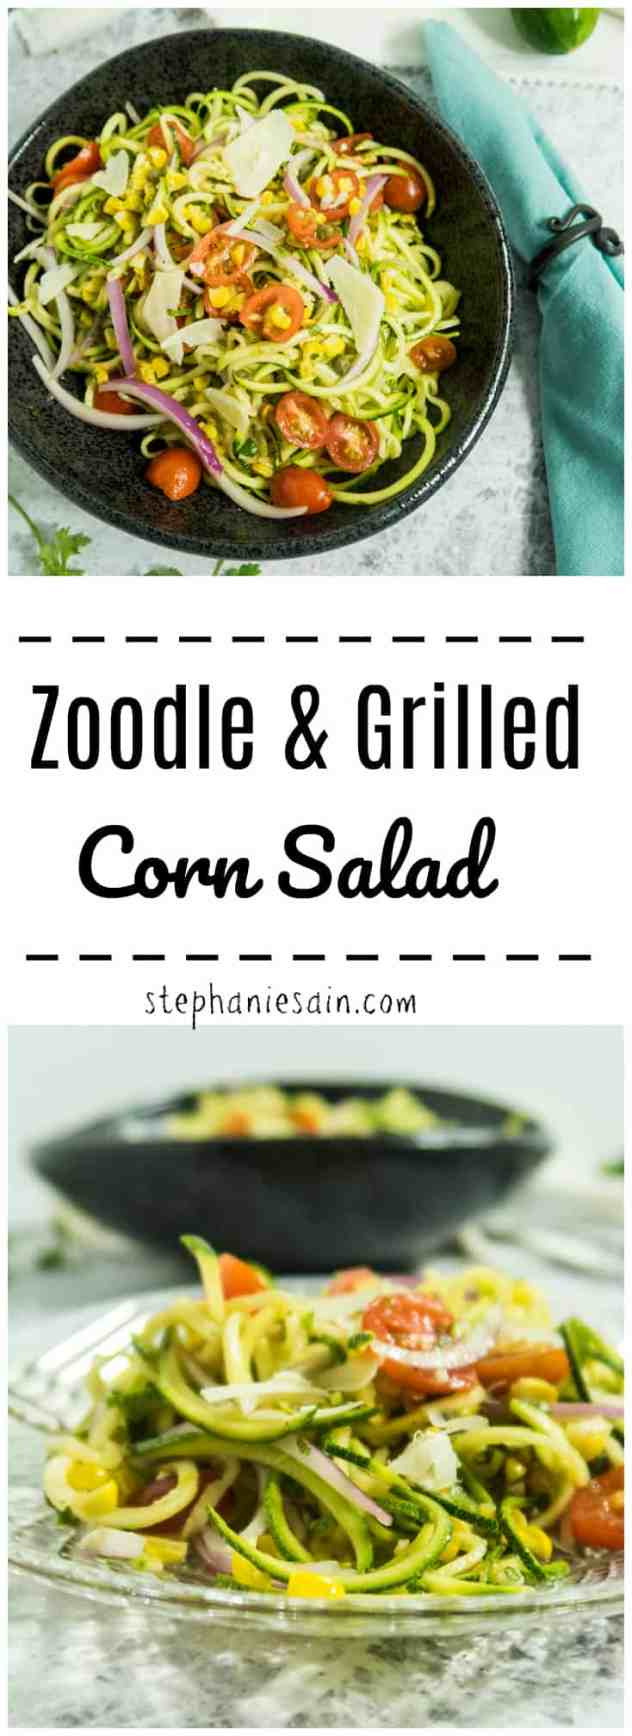 Zoodle & Grilled Corn Salad is perfect summer salad. Zucchini noodles topped with grilled corn and dressed with a cilantro lime dressing. Vegan option and Gluten Free.